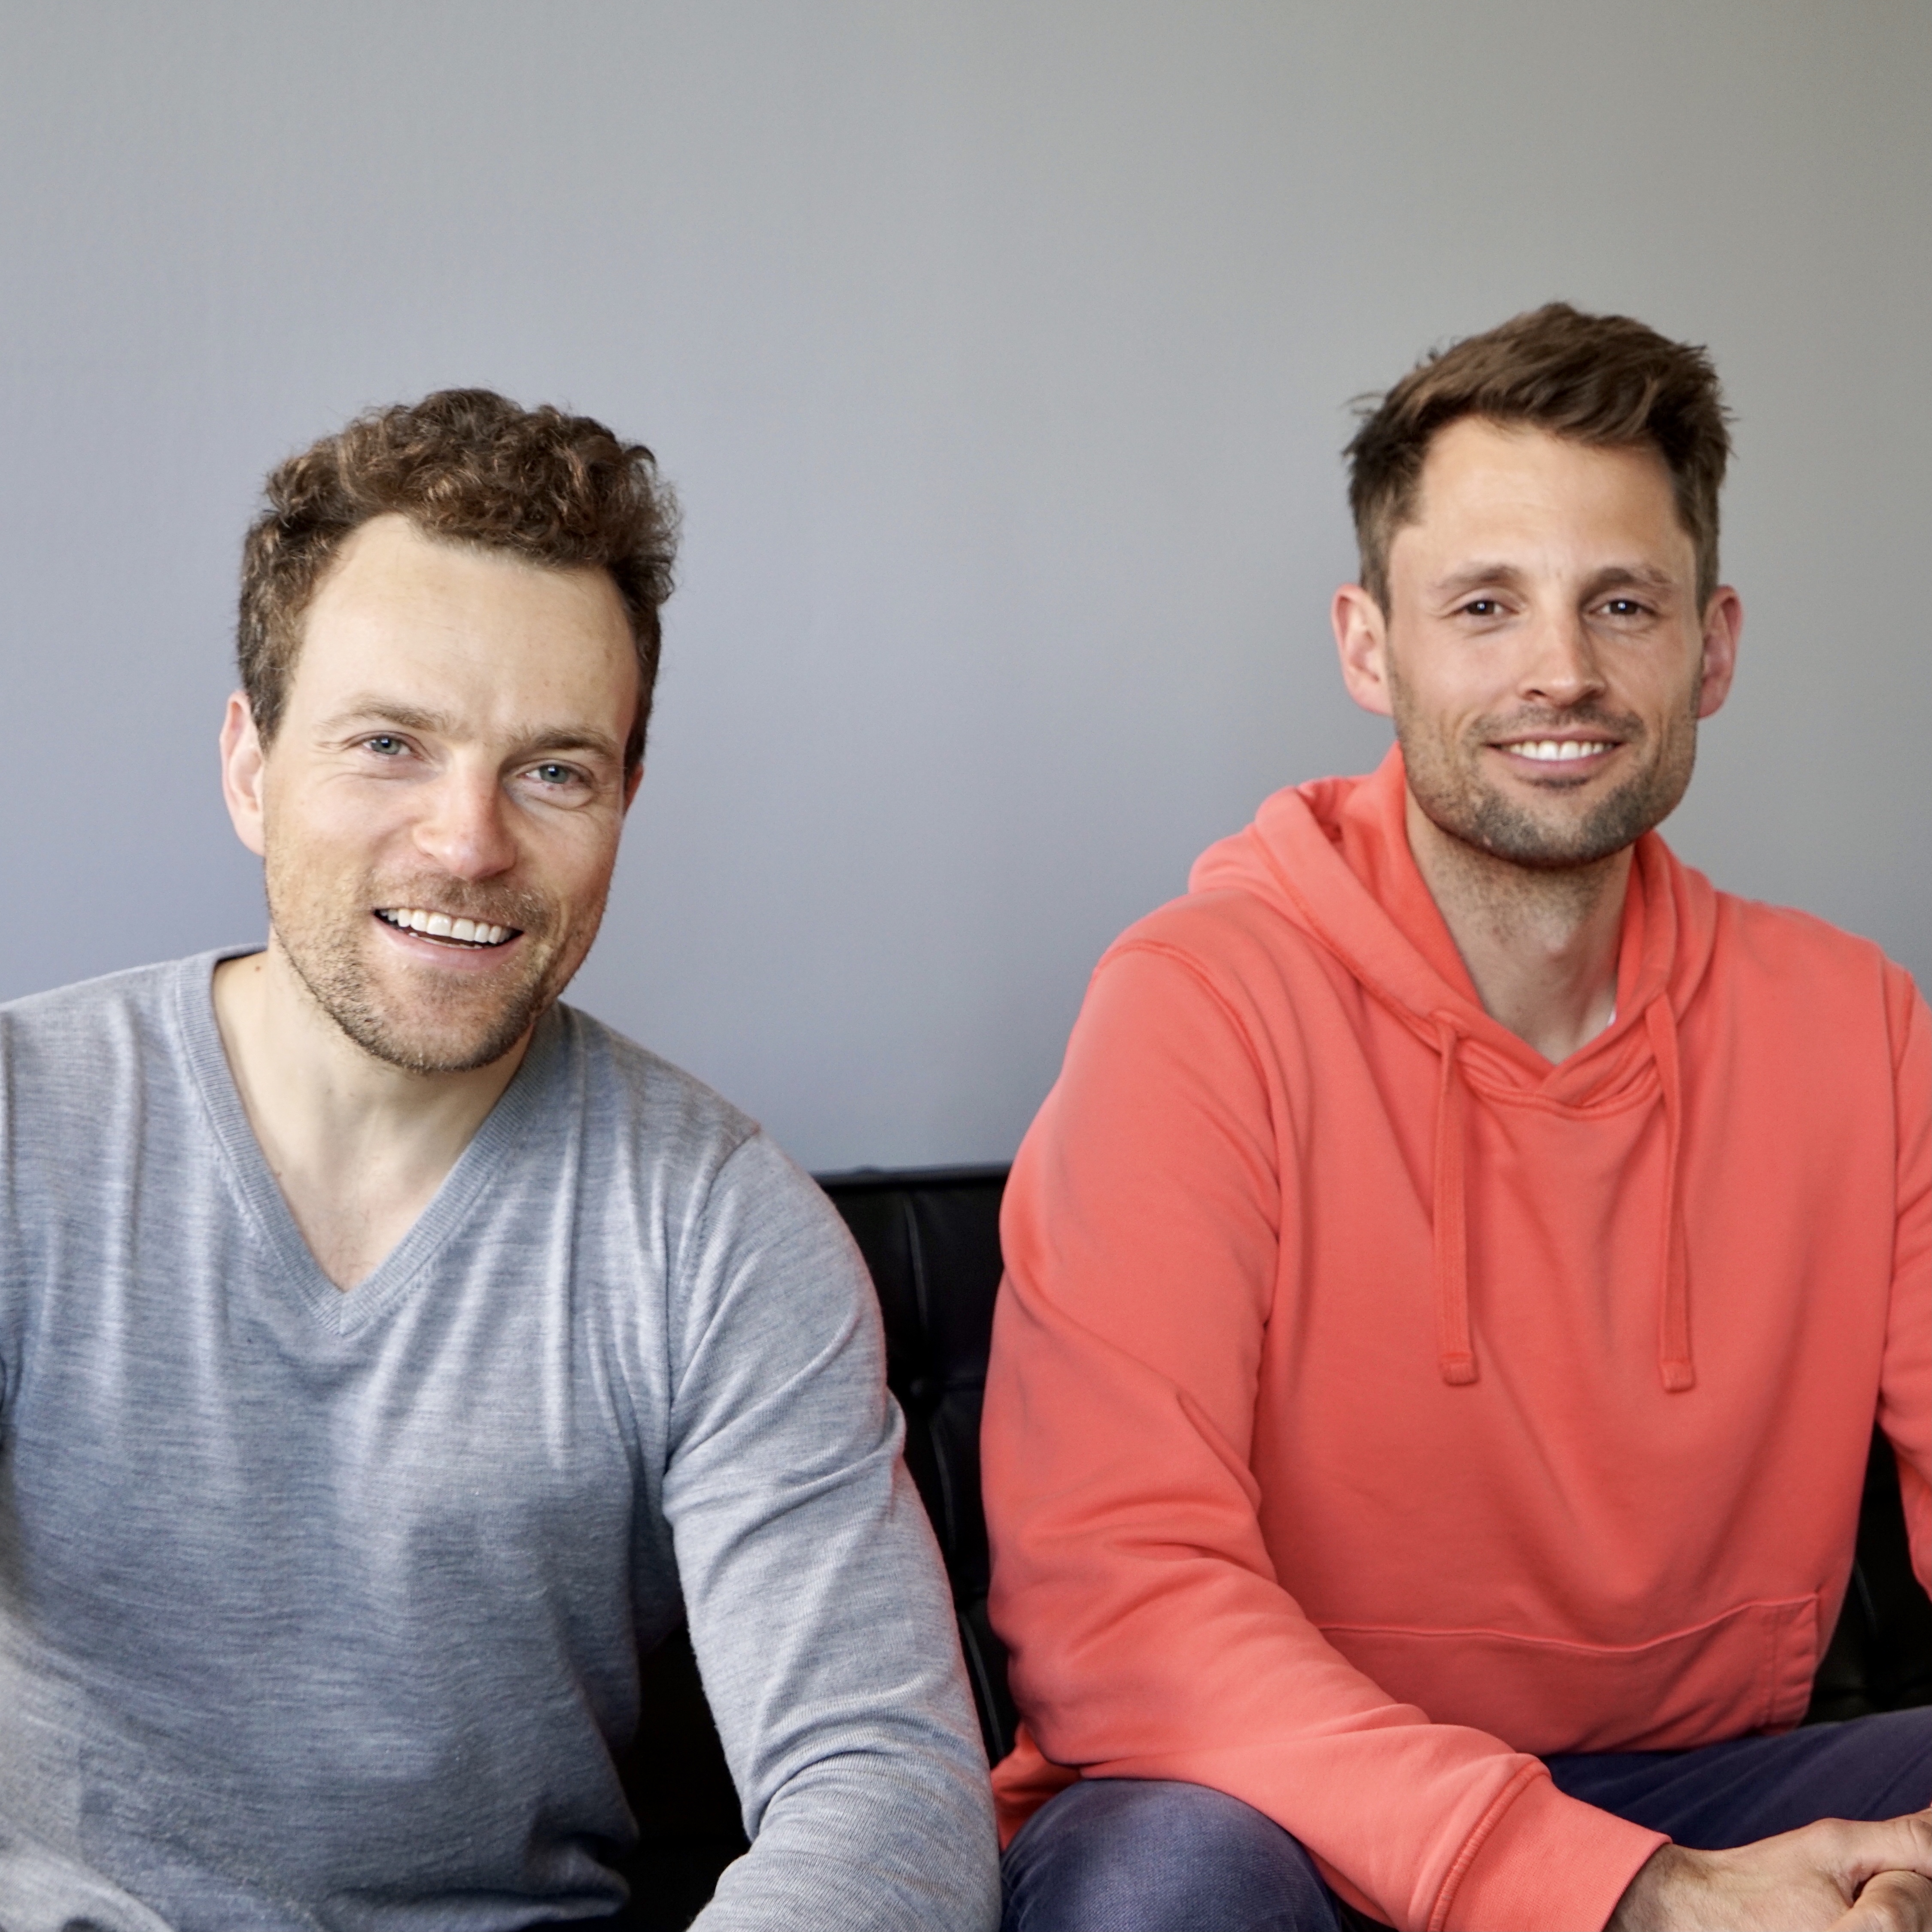 Fabian Furtmeier and Dominik Unützer - the two founders of AMAZD